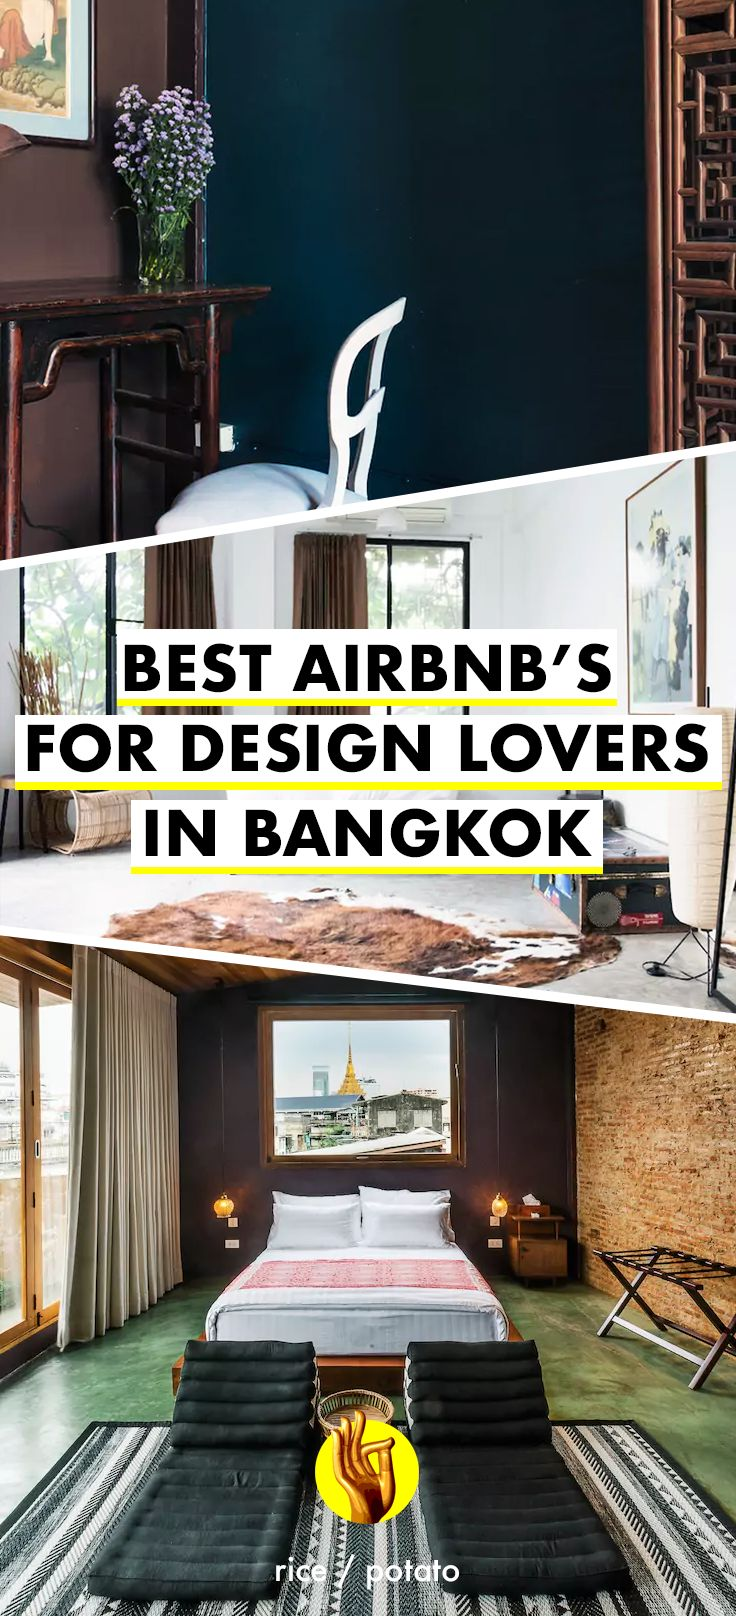 From quirky shophouses in Bangkok's Chinatown to designer lofts in the city center - check out these drool-worth Airbnb apartments in Bangkok, Thailand!